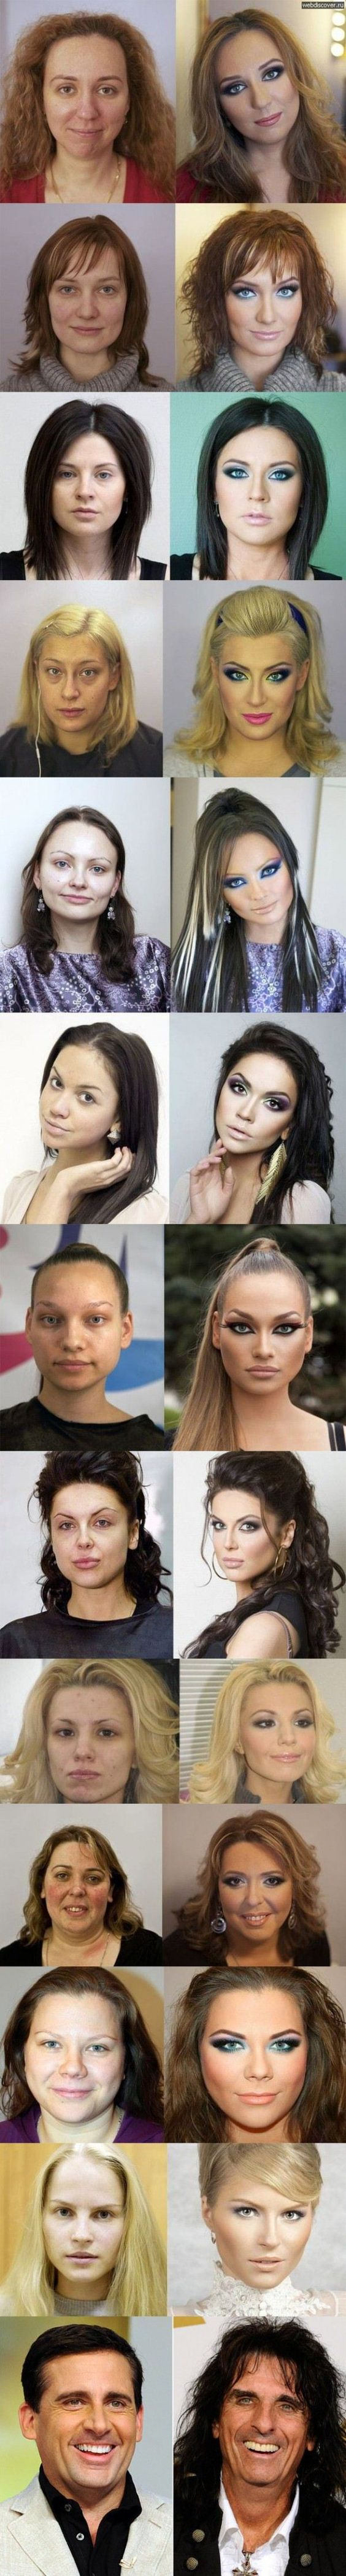 Makeup Before And After. The Transformations Are Insane, Especially The Last One...: Make Up, Power Of Makeup, Funny Pictures, Funny Stuff, Funnies, Beauty, Hair